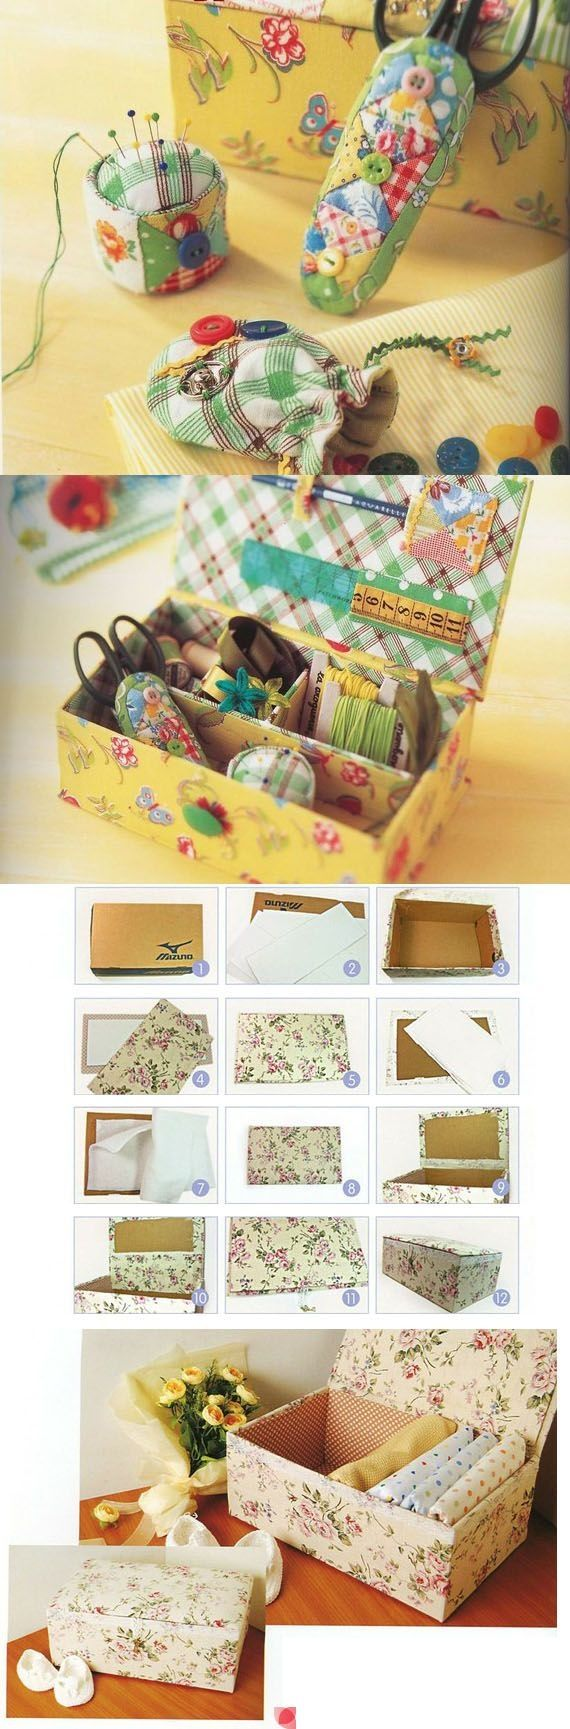 Never worry about storage again...create as many as you need out of shoe boxes, any box...